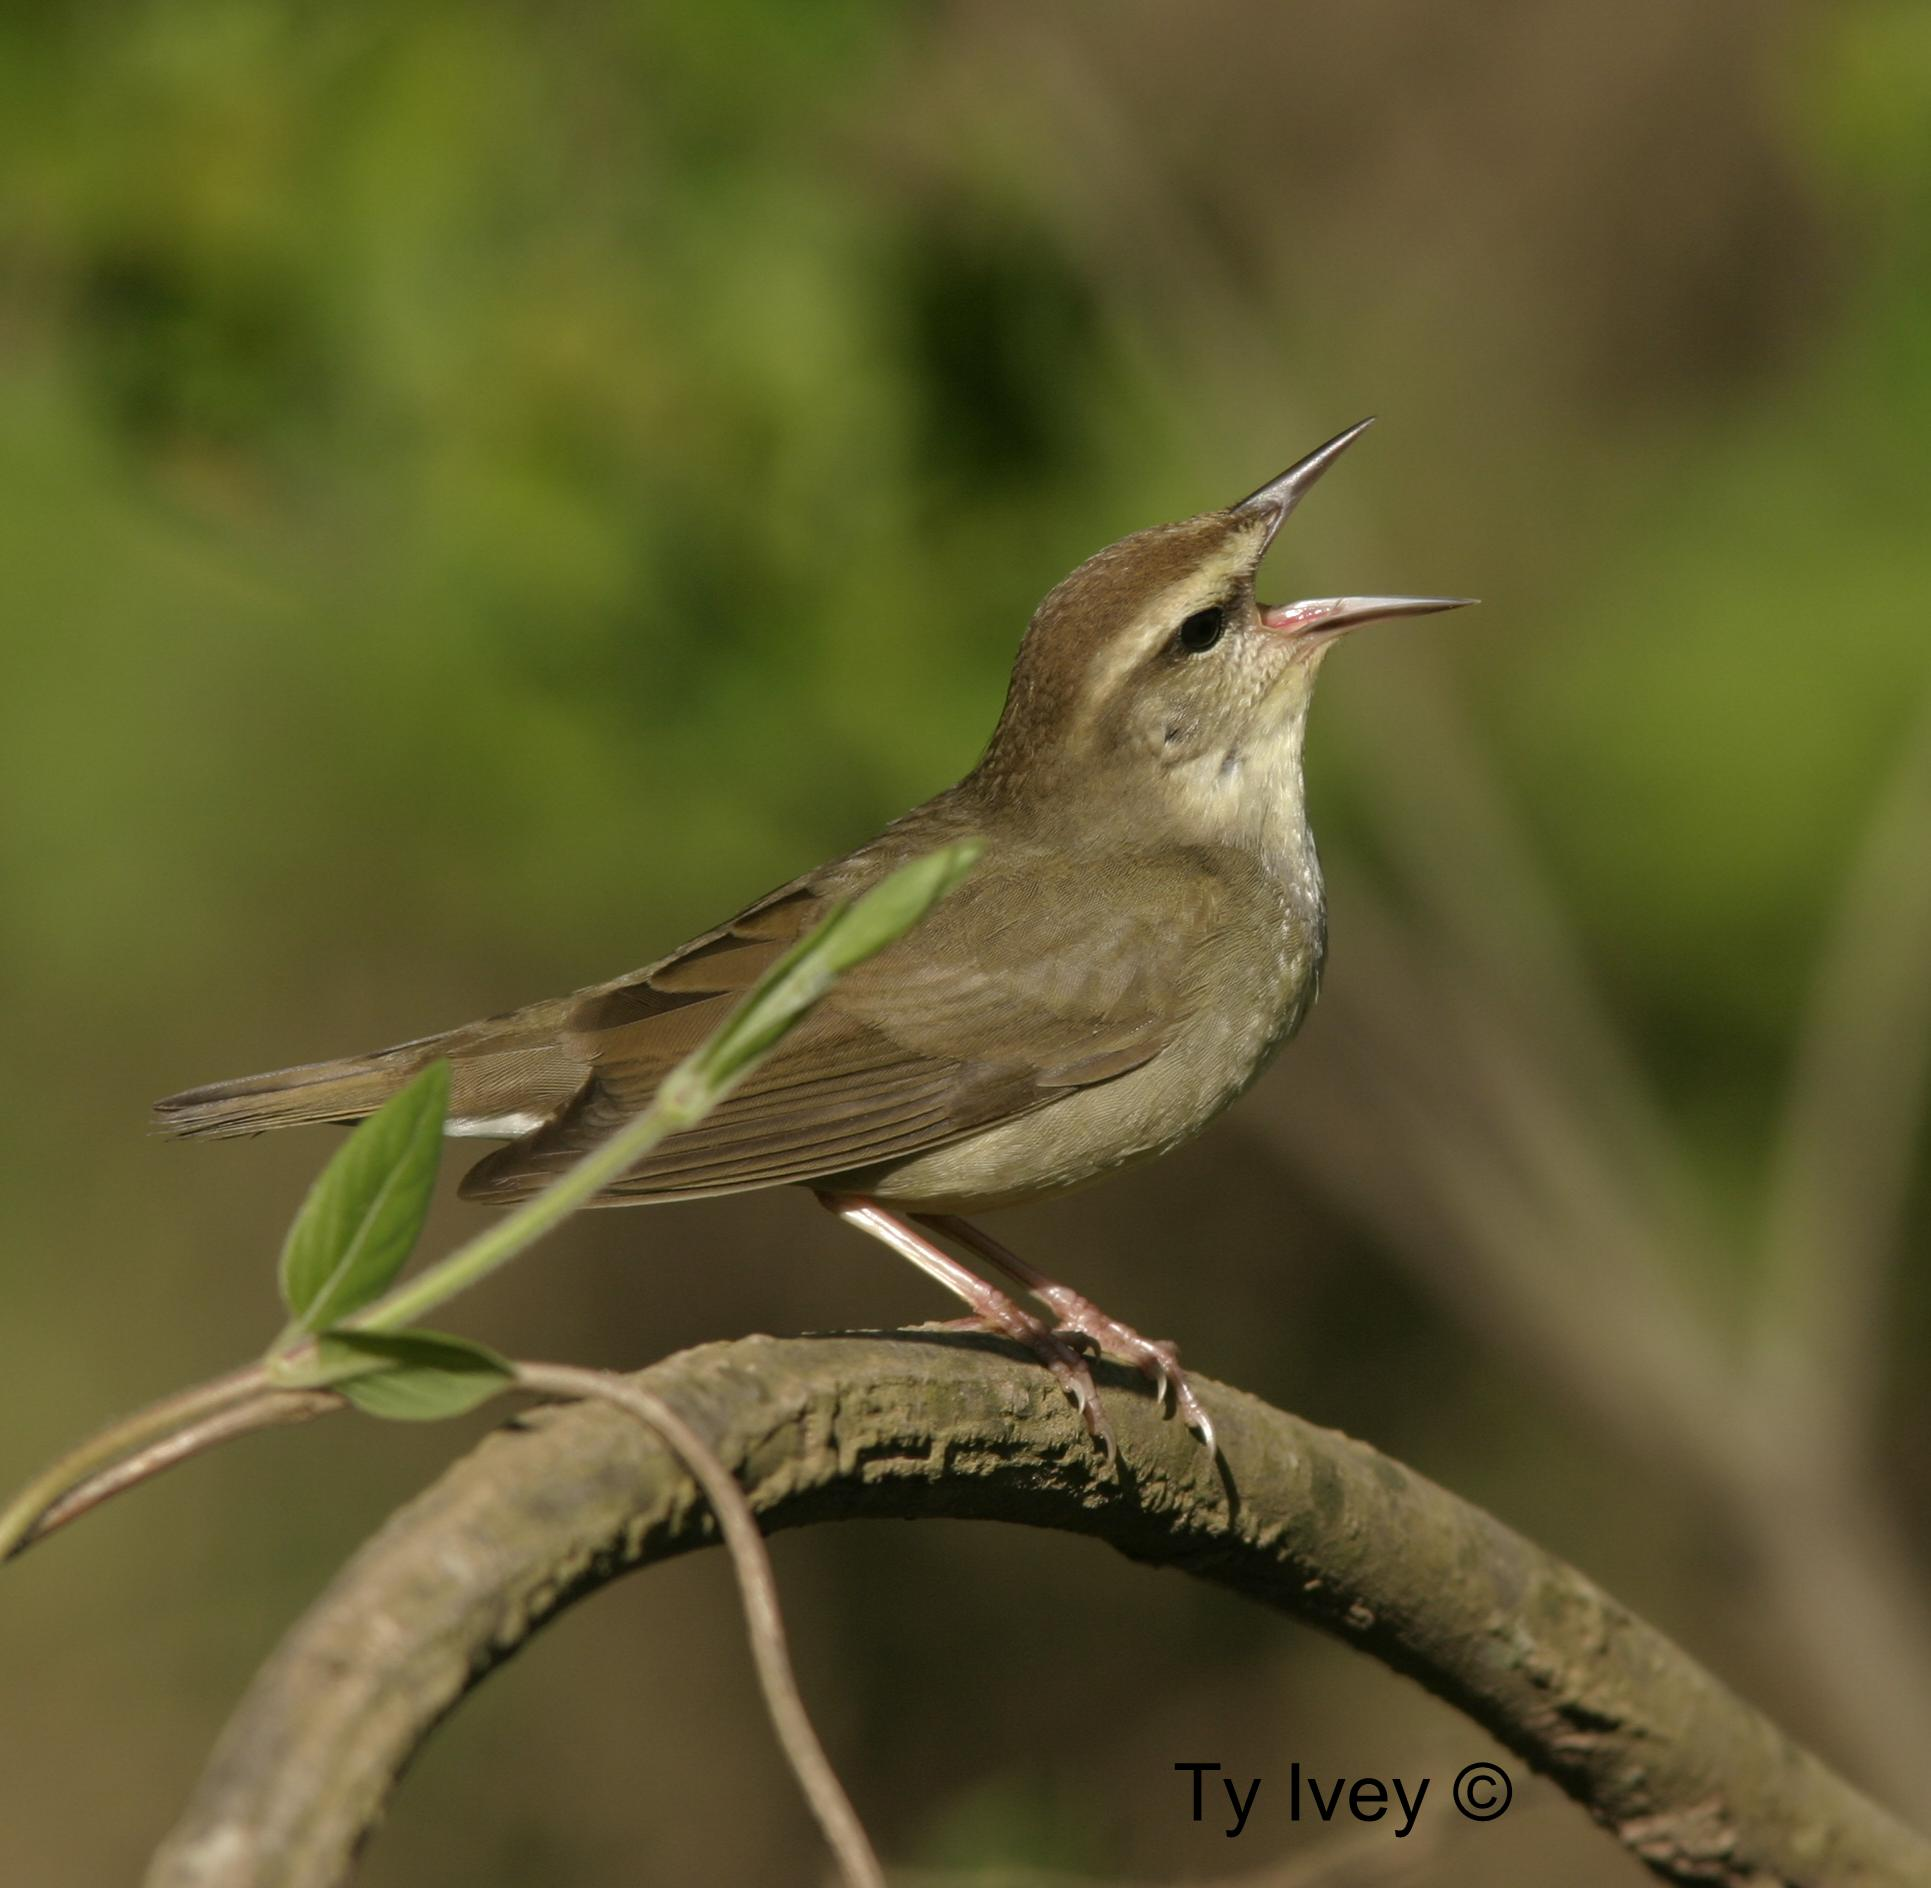 Photo of a Swainson's warbler.